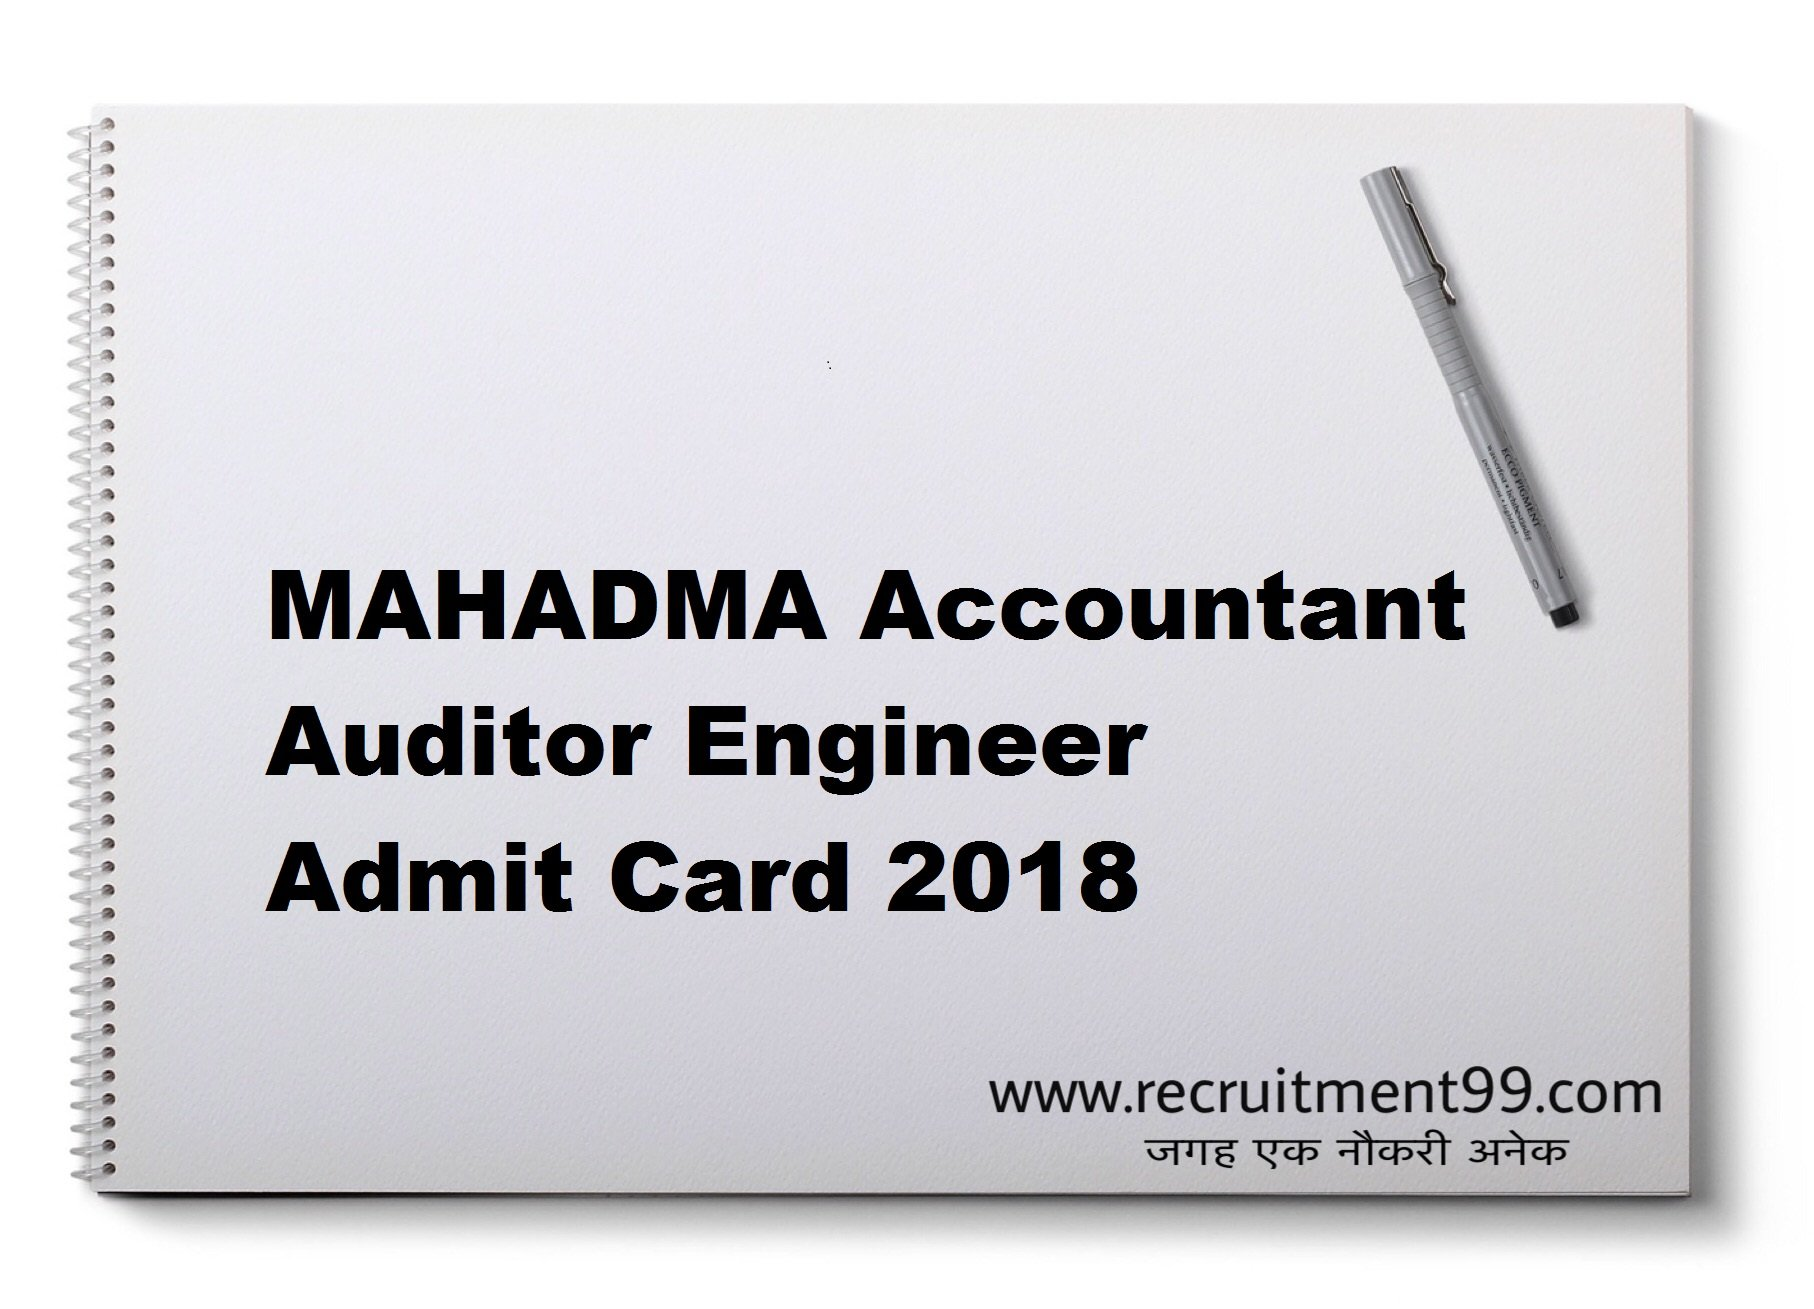 MADADMA Accountant Auditor Engineer Recruitment Admit Card Result 2018